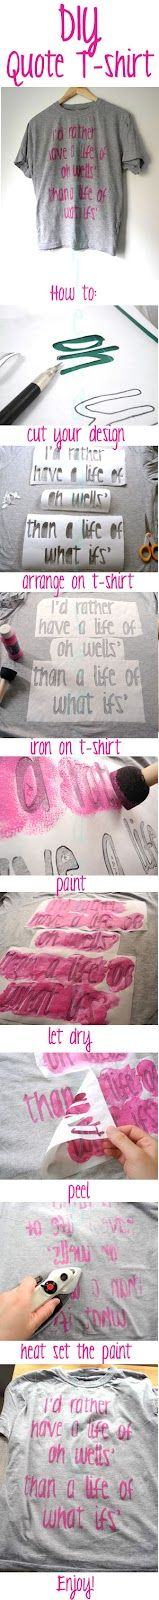 DIY Words on T-Shirt